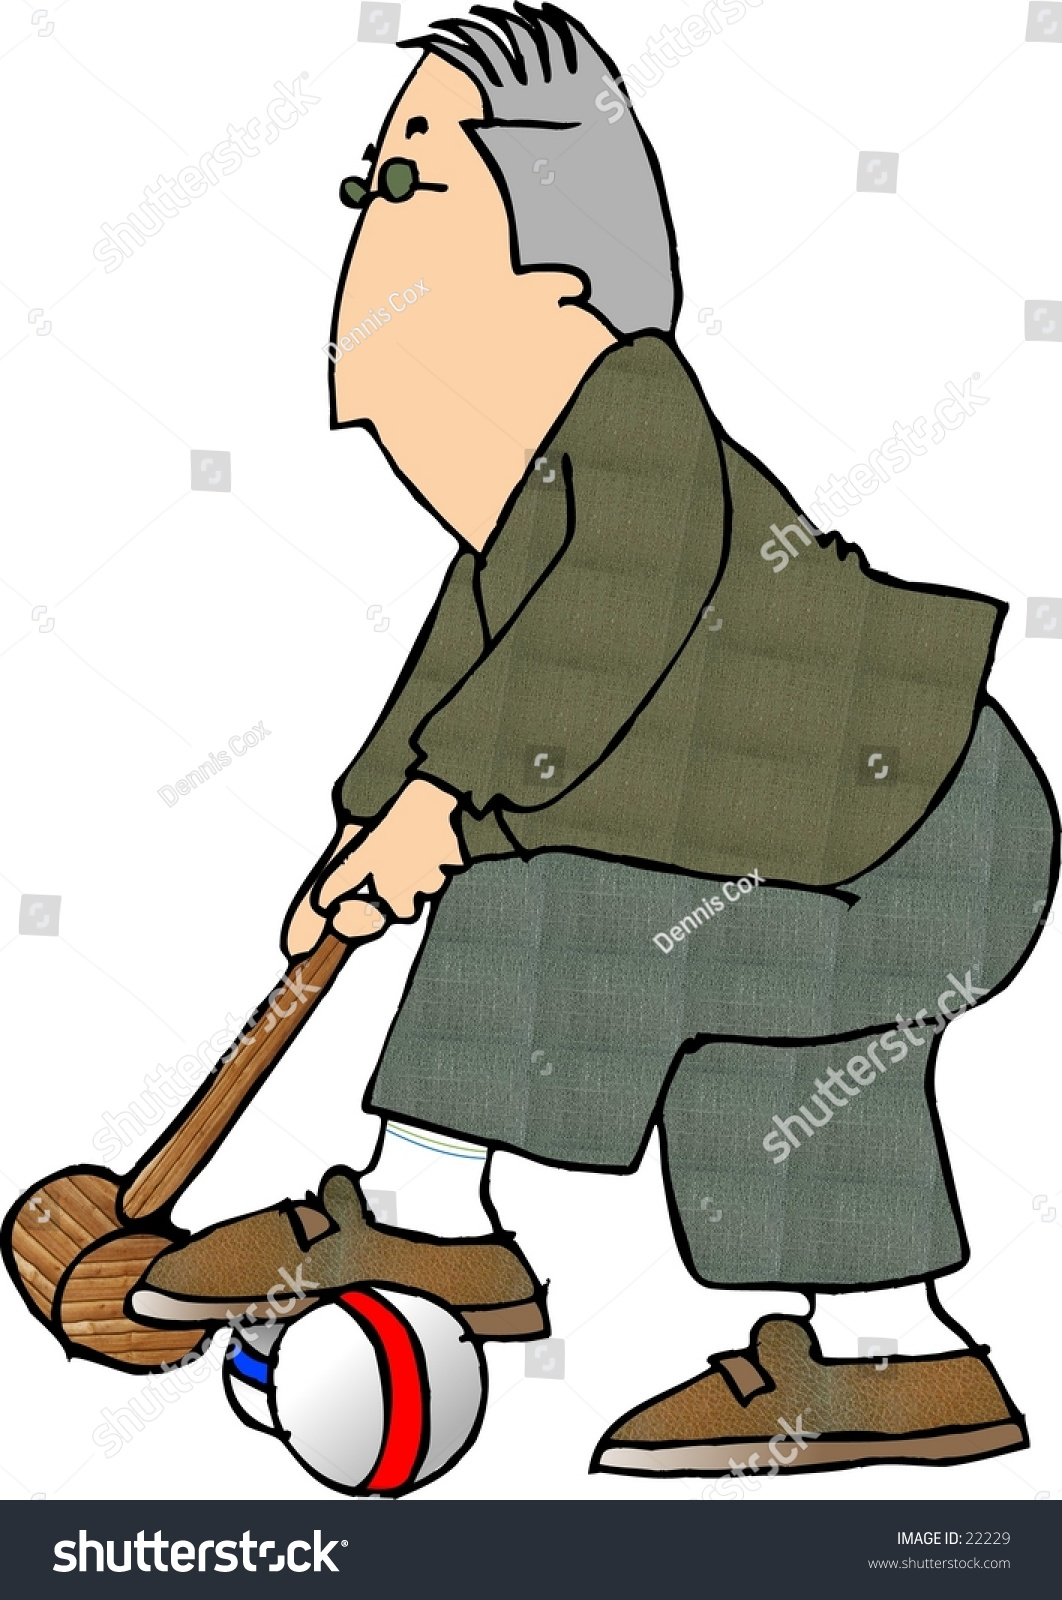 Clipart Illustration Of Man Playing Croquet. - 22229 : Shutterstock